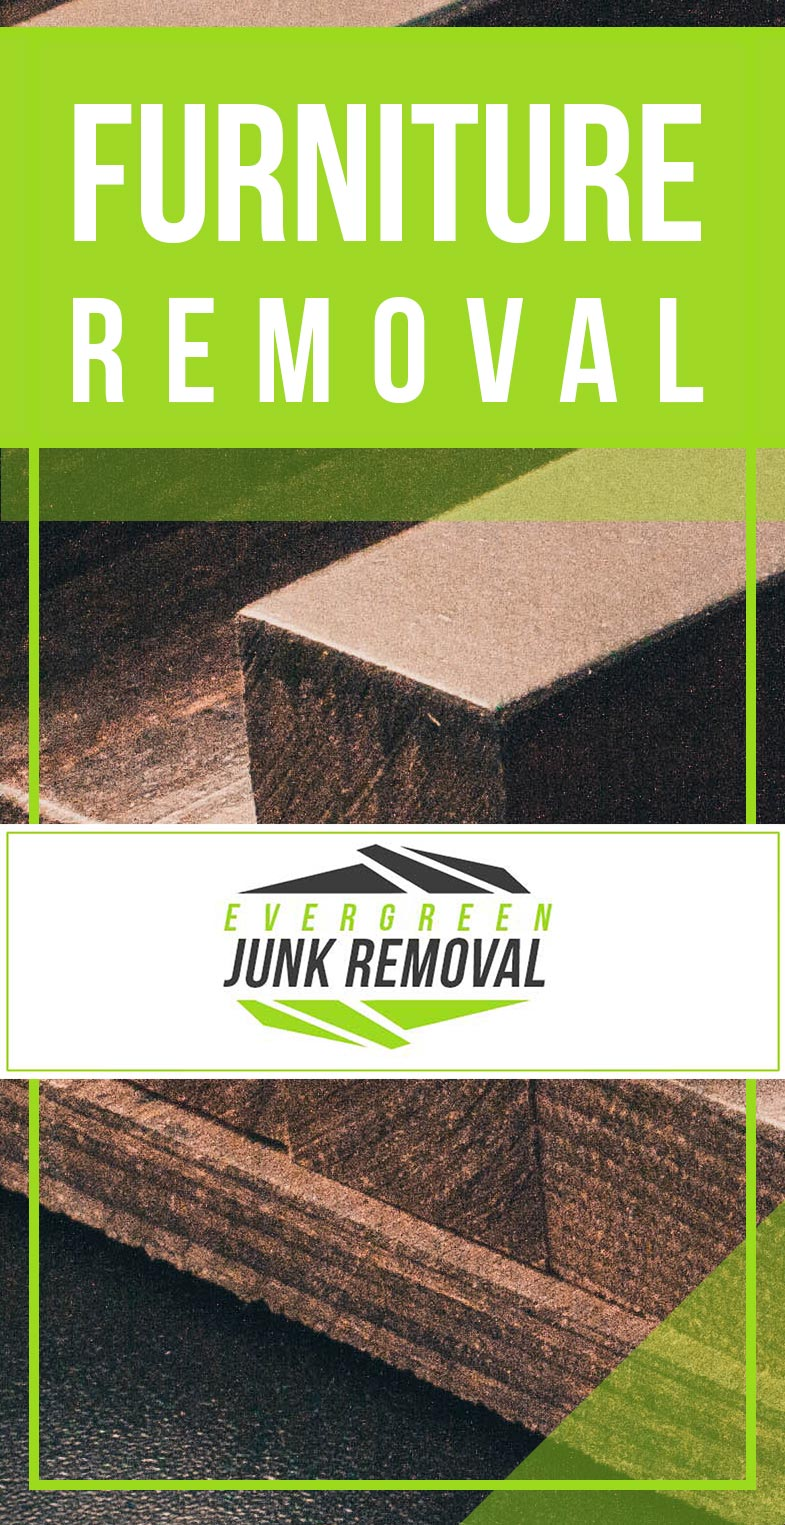 Broomfield Furniture Removal